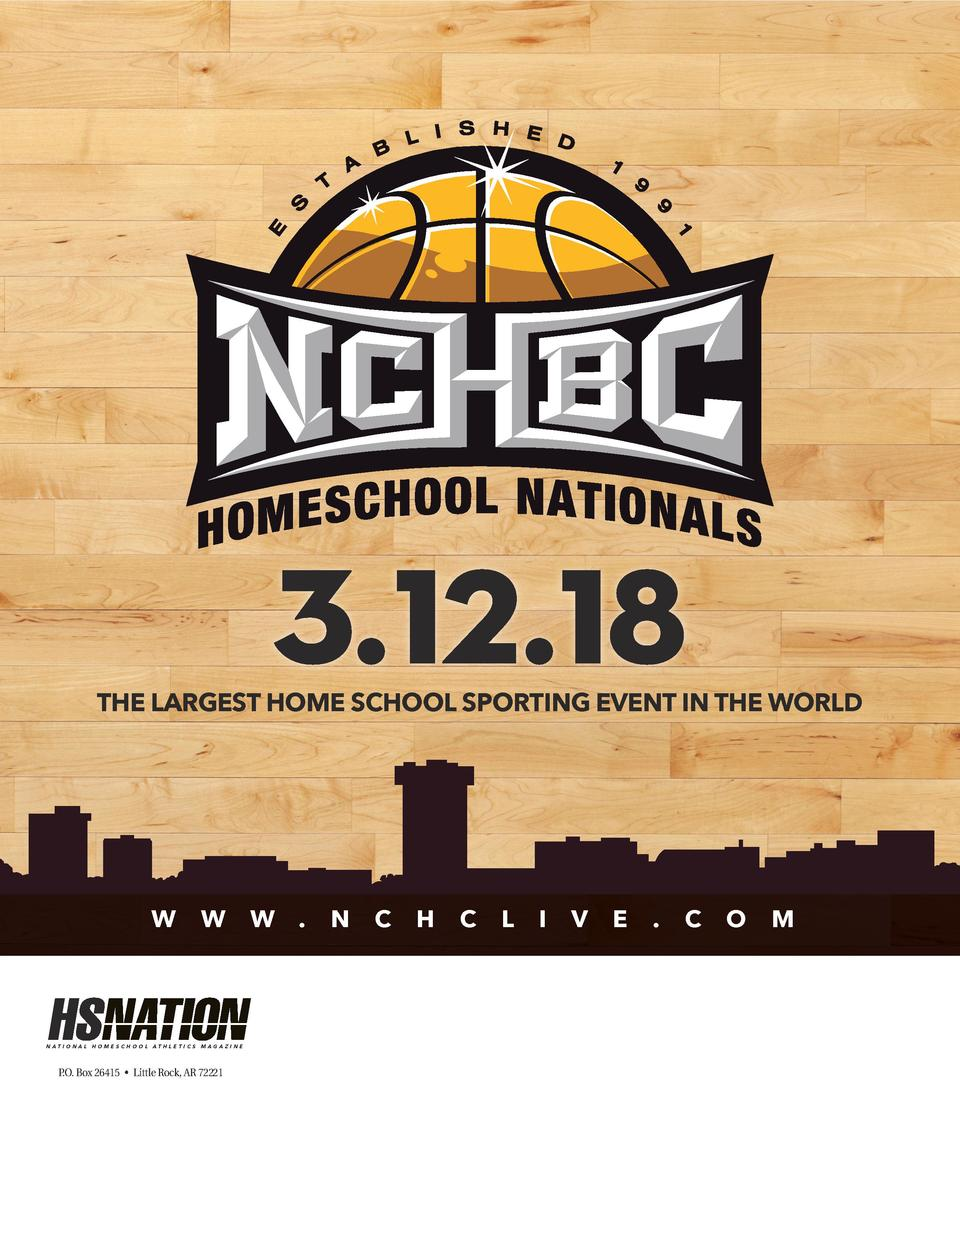 3.12.18  THE LARGEST HOME SCHOOL SPORTING EVENT IN THE WORLD  W  W  NATIONAL HOMESCHOOL ATHLETICS MAGAZINE  P.O. Box 26415...